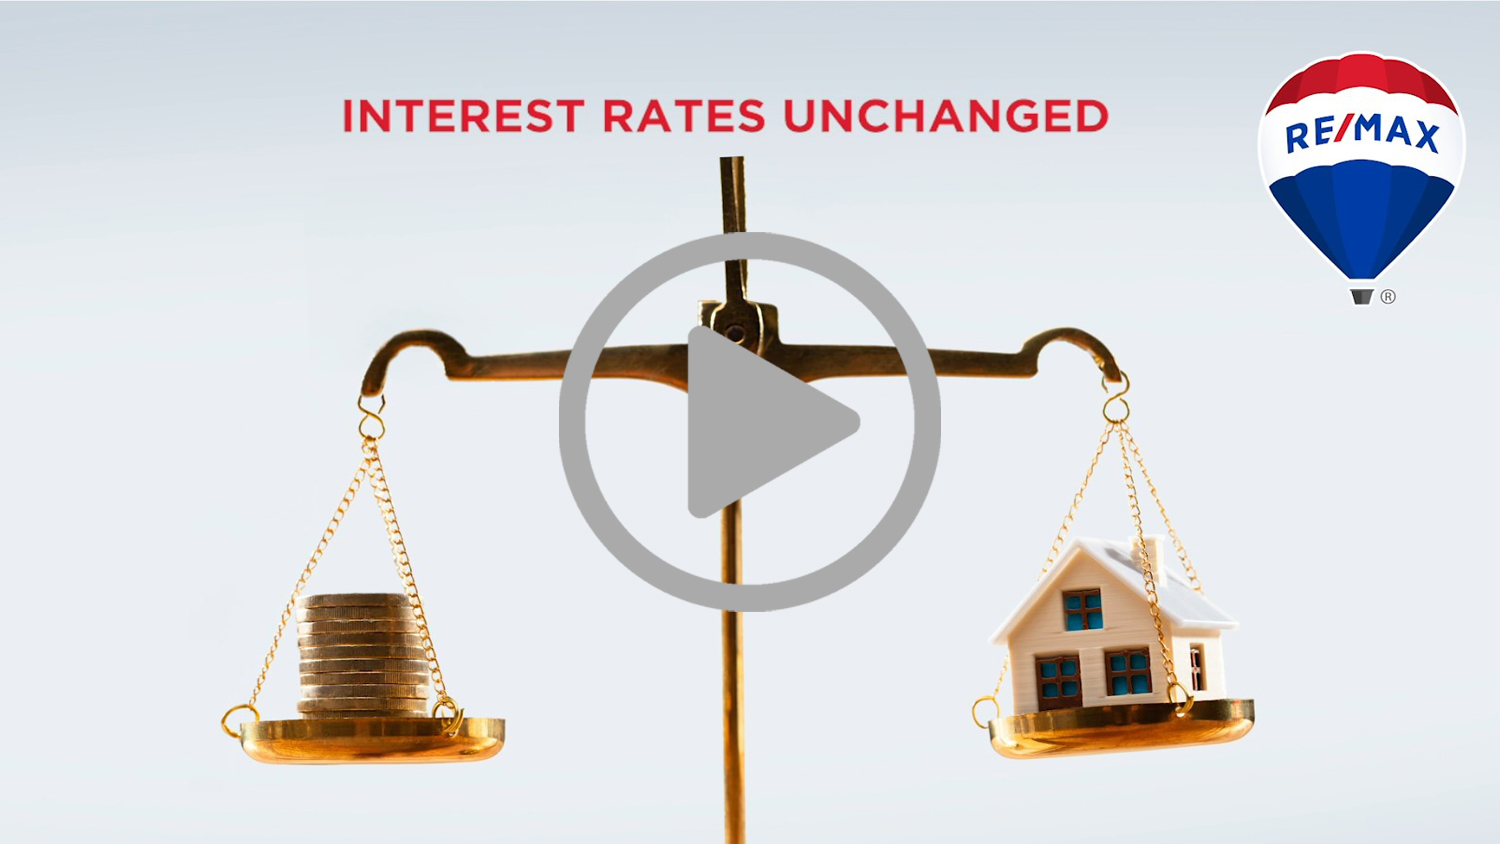 MPC ANNOUNCES GOOD NEWS FOR HOUSING MARKET:  INTEREST RATES UNCHANGED